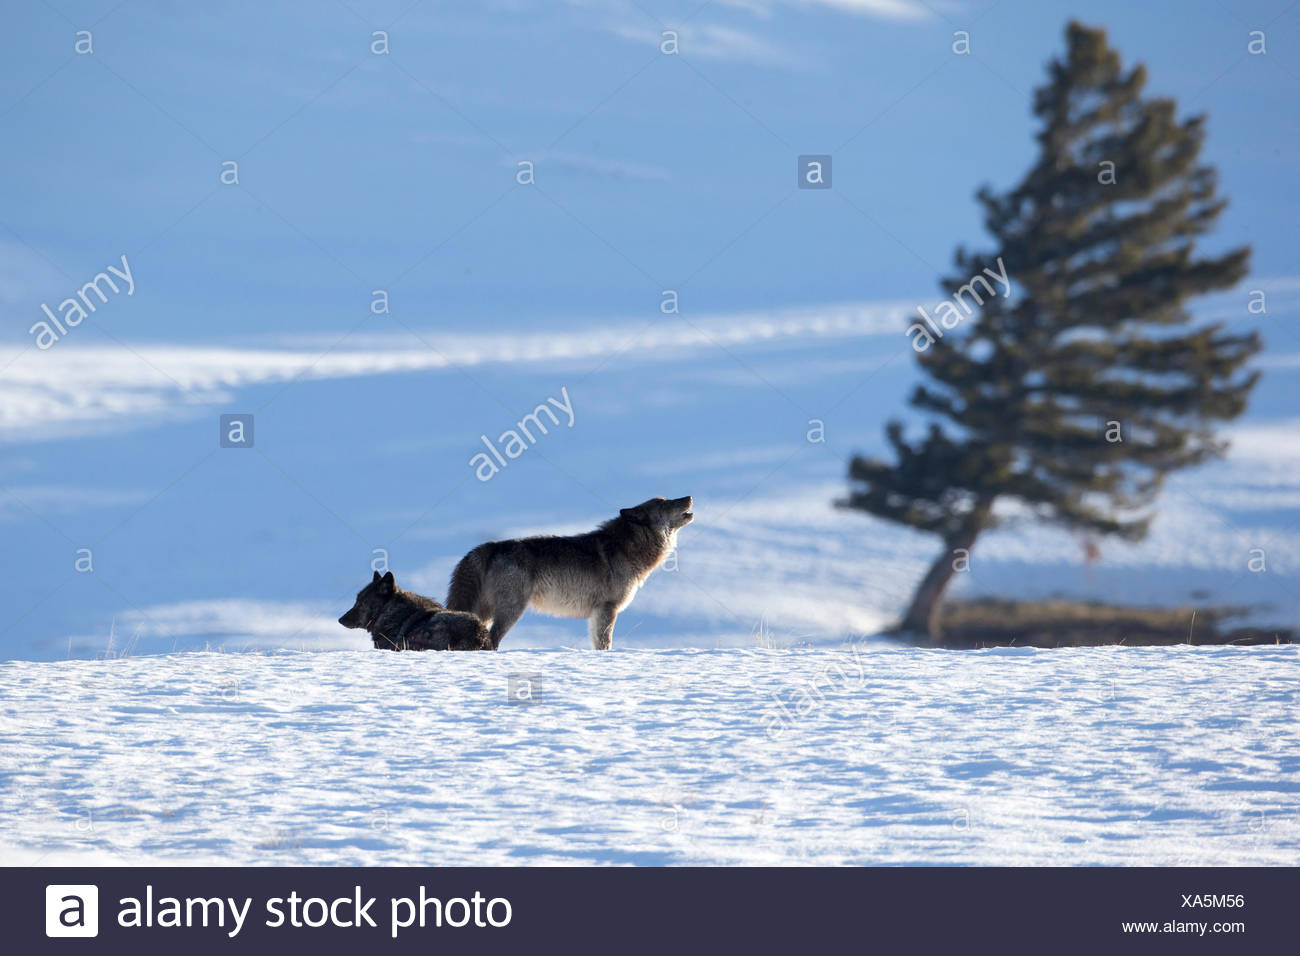 A gray wolf, Canis lupus, howls on a snowy field as another wolf rests close by. - Stock Image